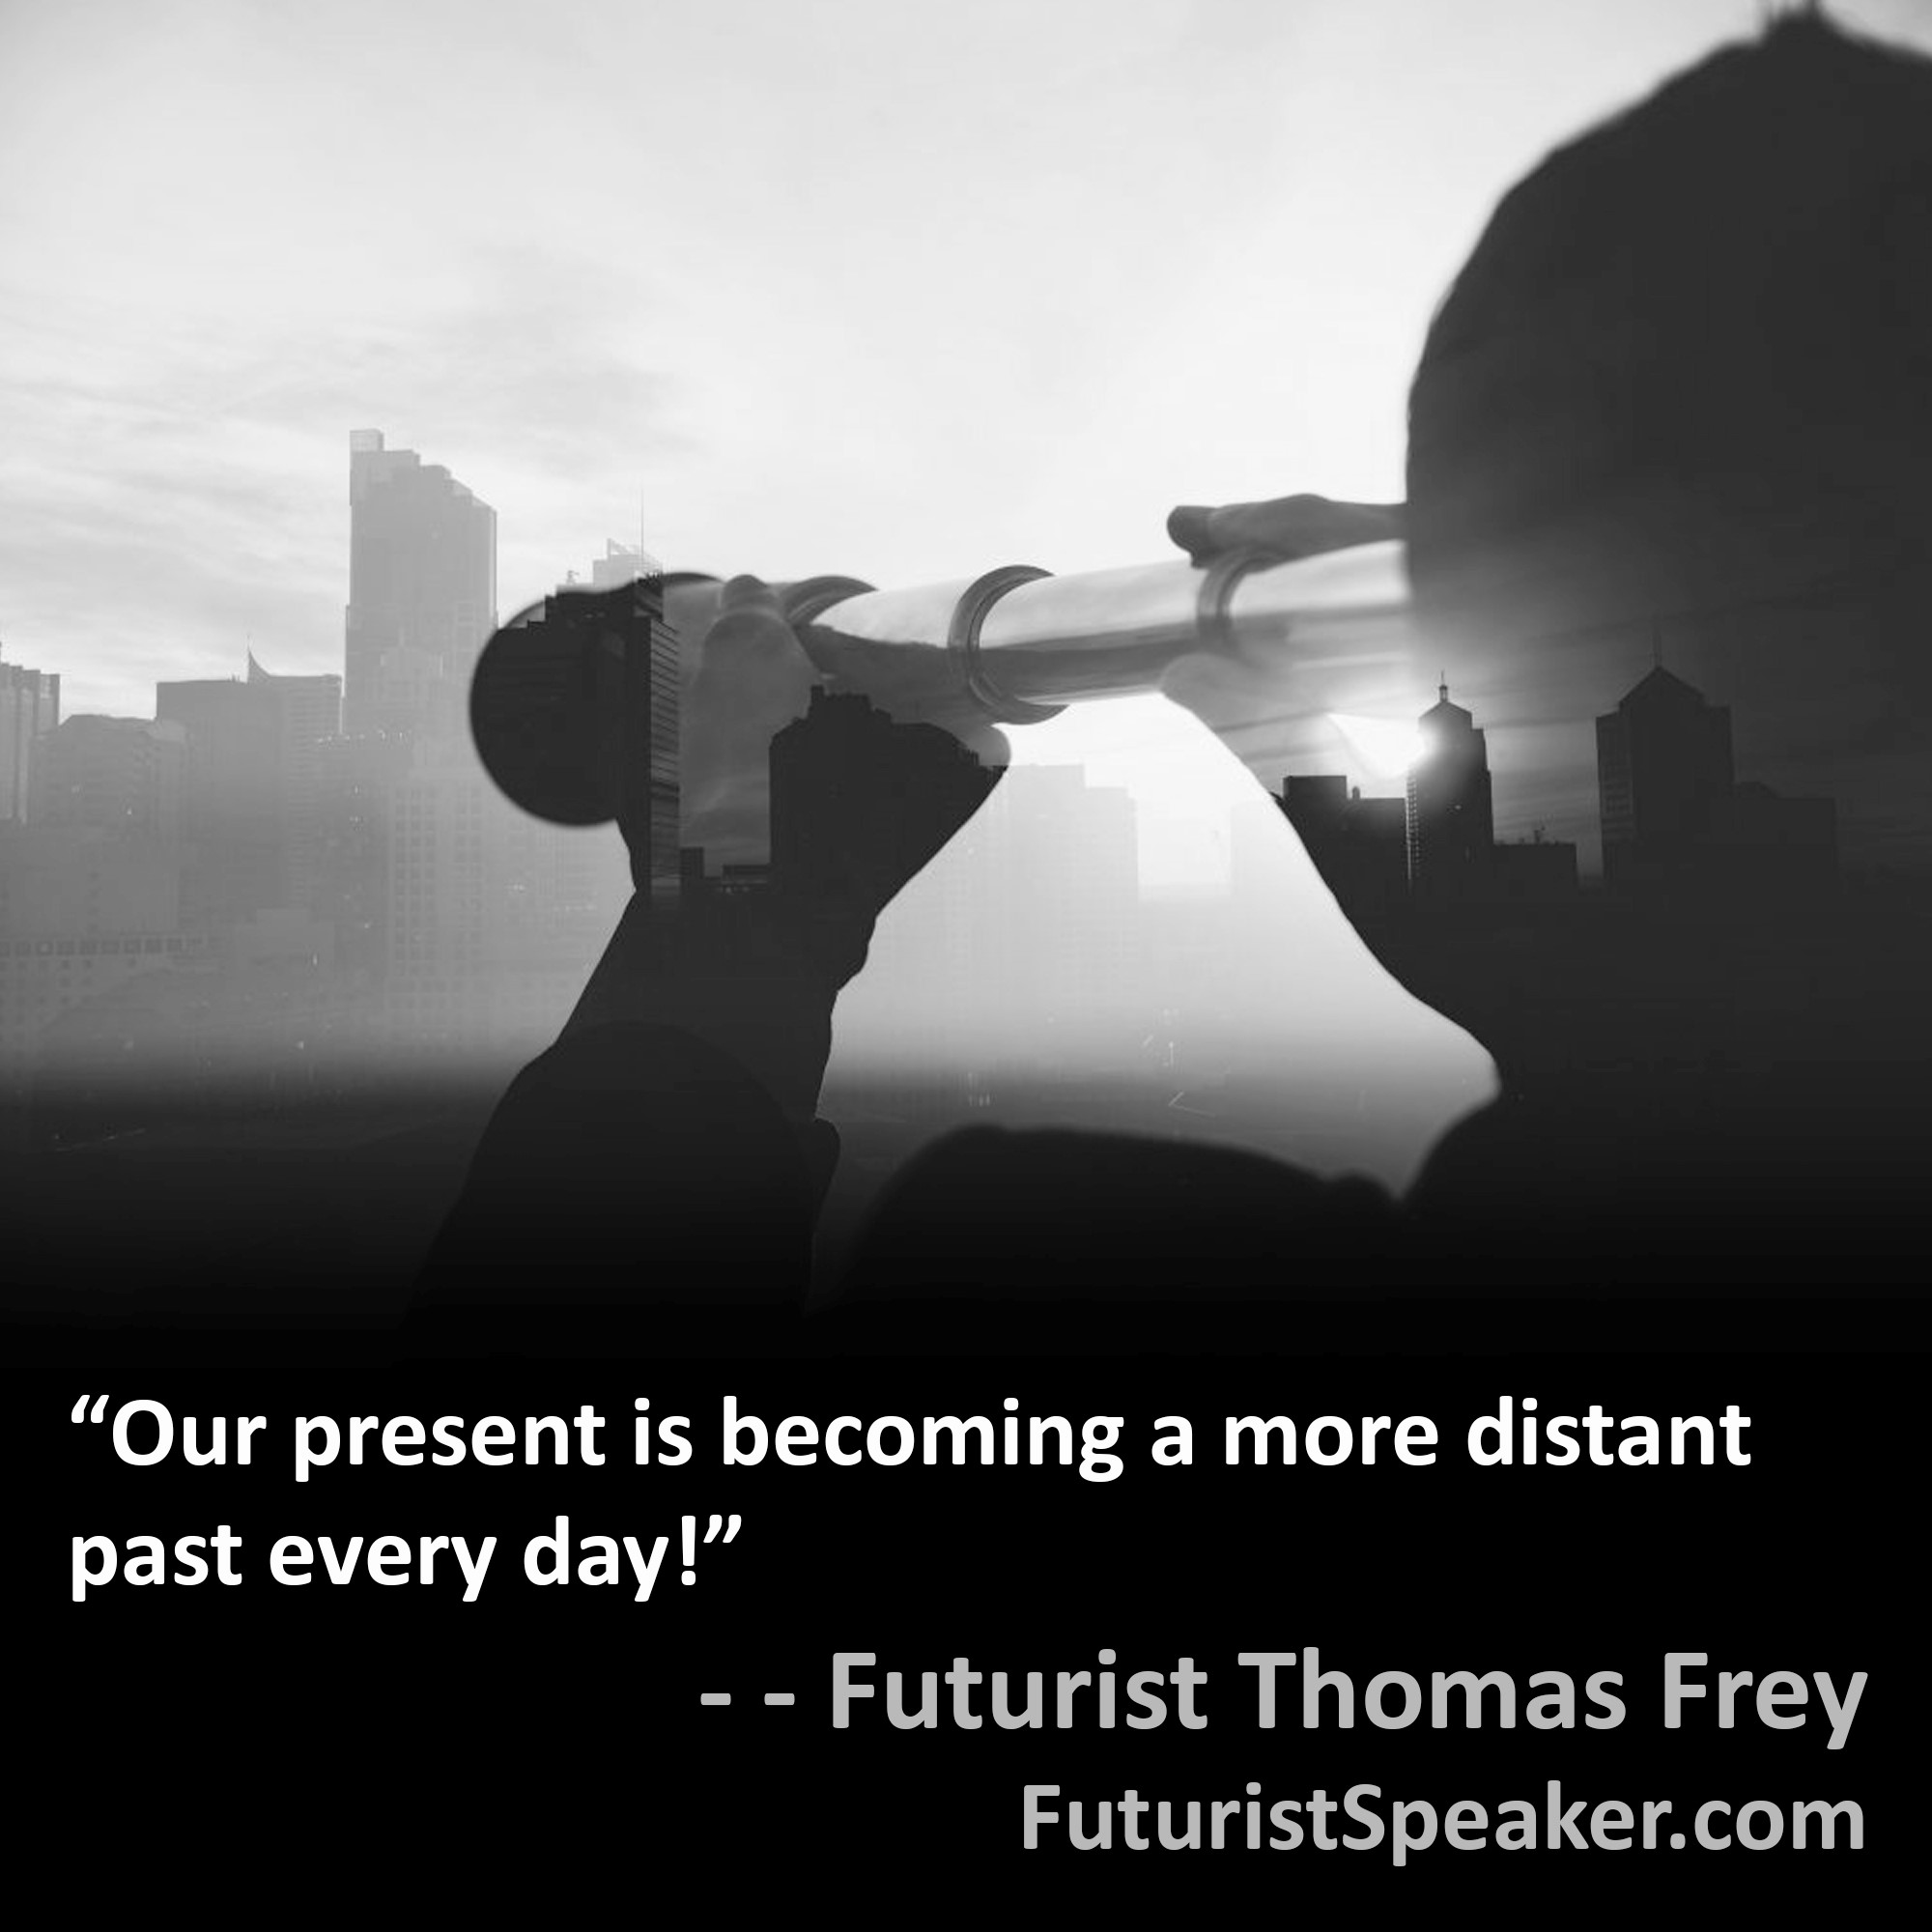 Thomas Frey Futurist Speaker Famous Quote: Our present is becoming a more distant past every day.